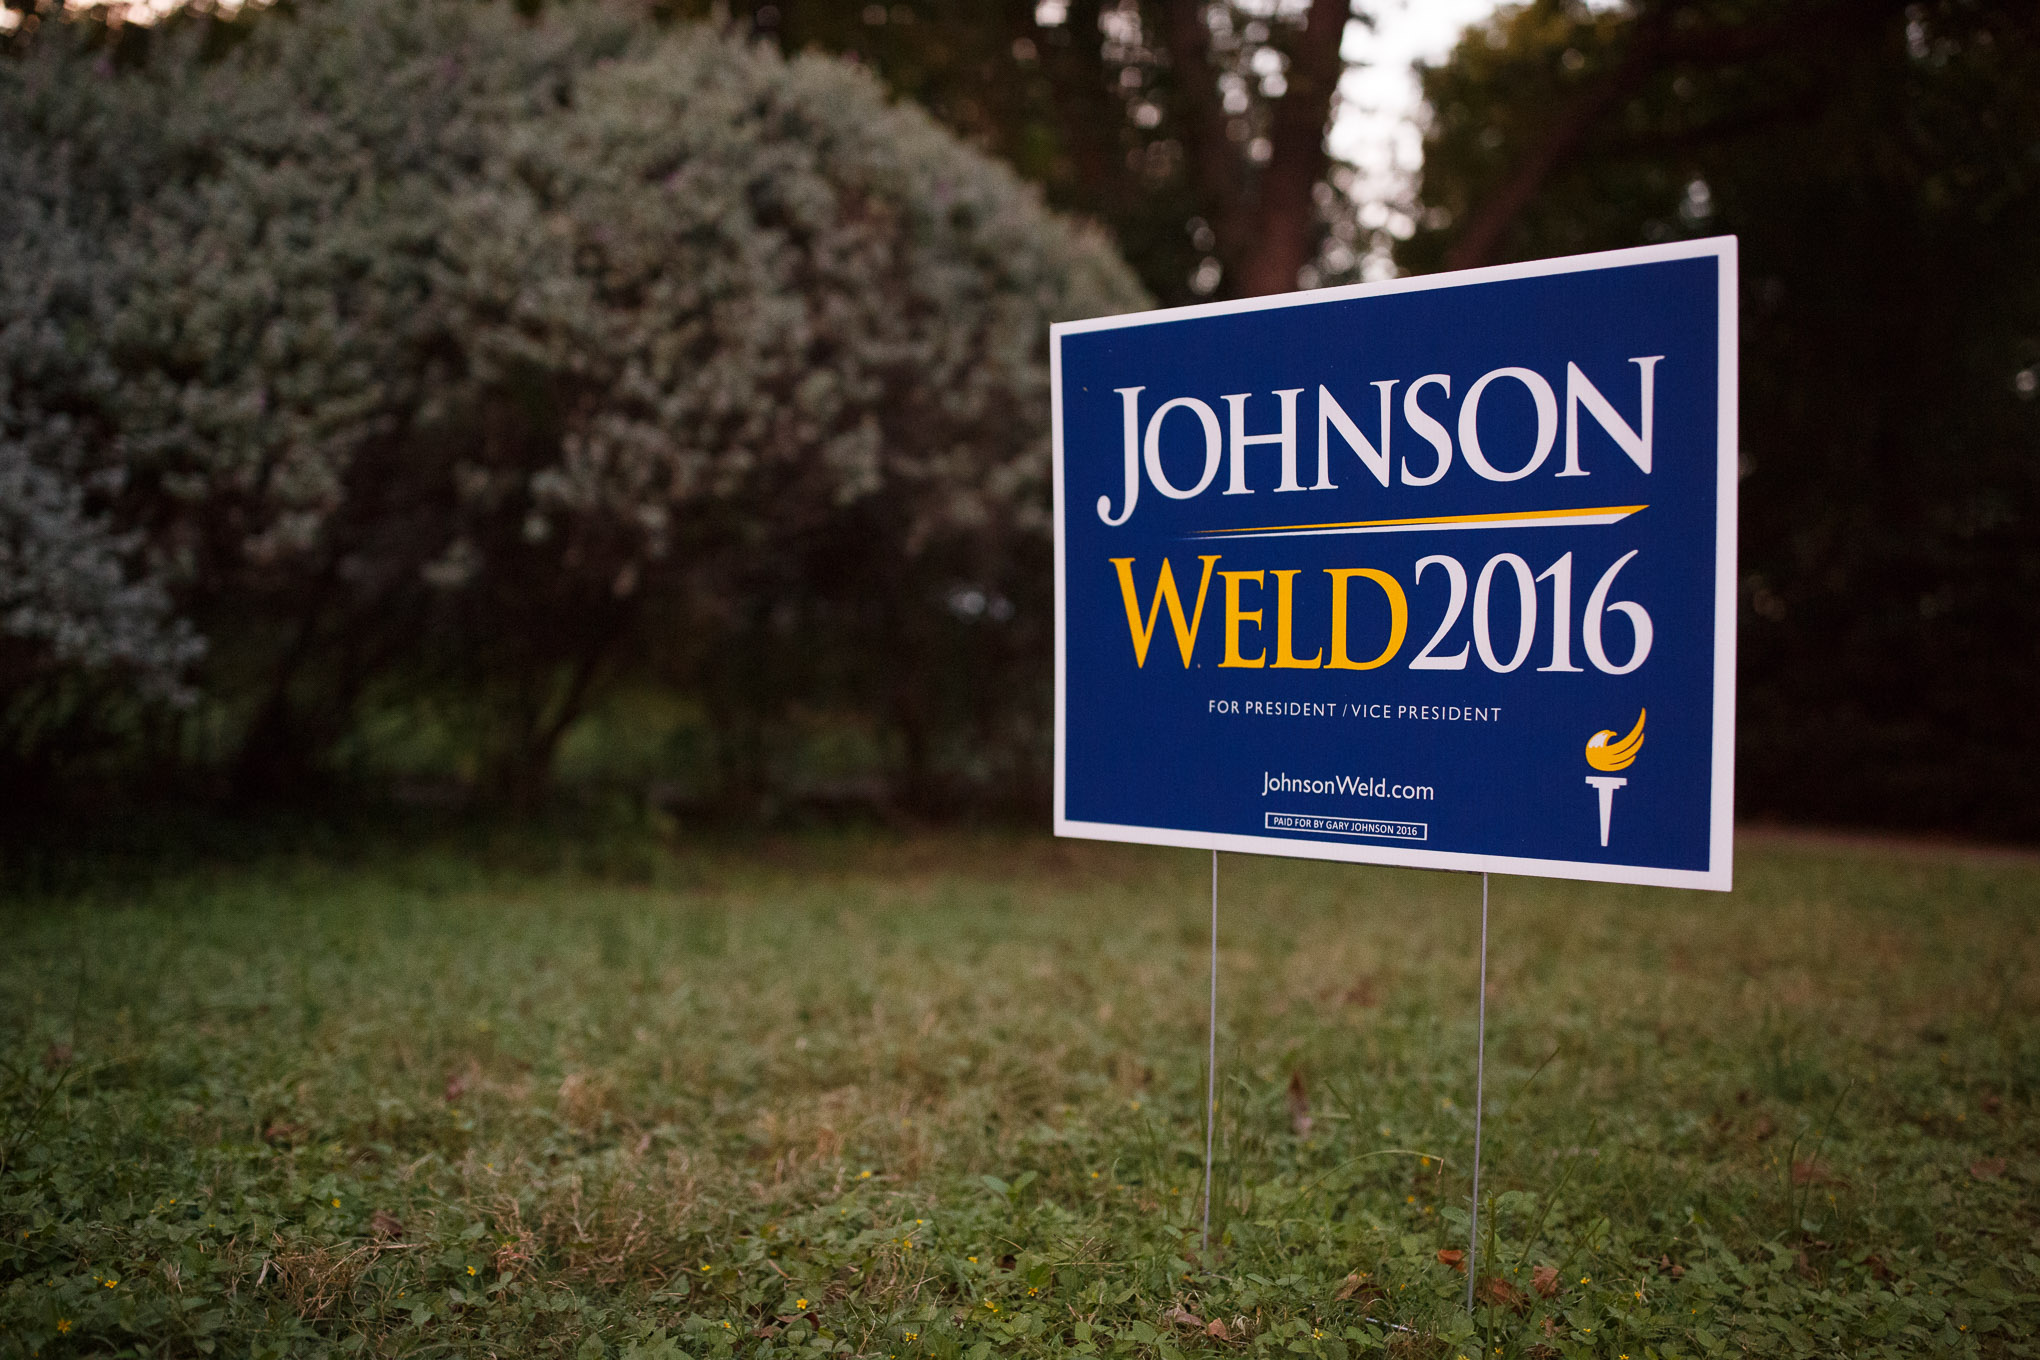 A sign in support of Libertarian Presidential candidate Gary Johnson and his running mate Bill Weld in a front yard in Alamo Heights.